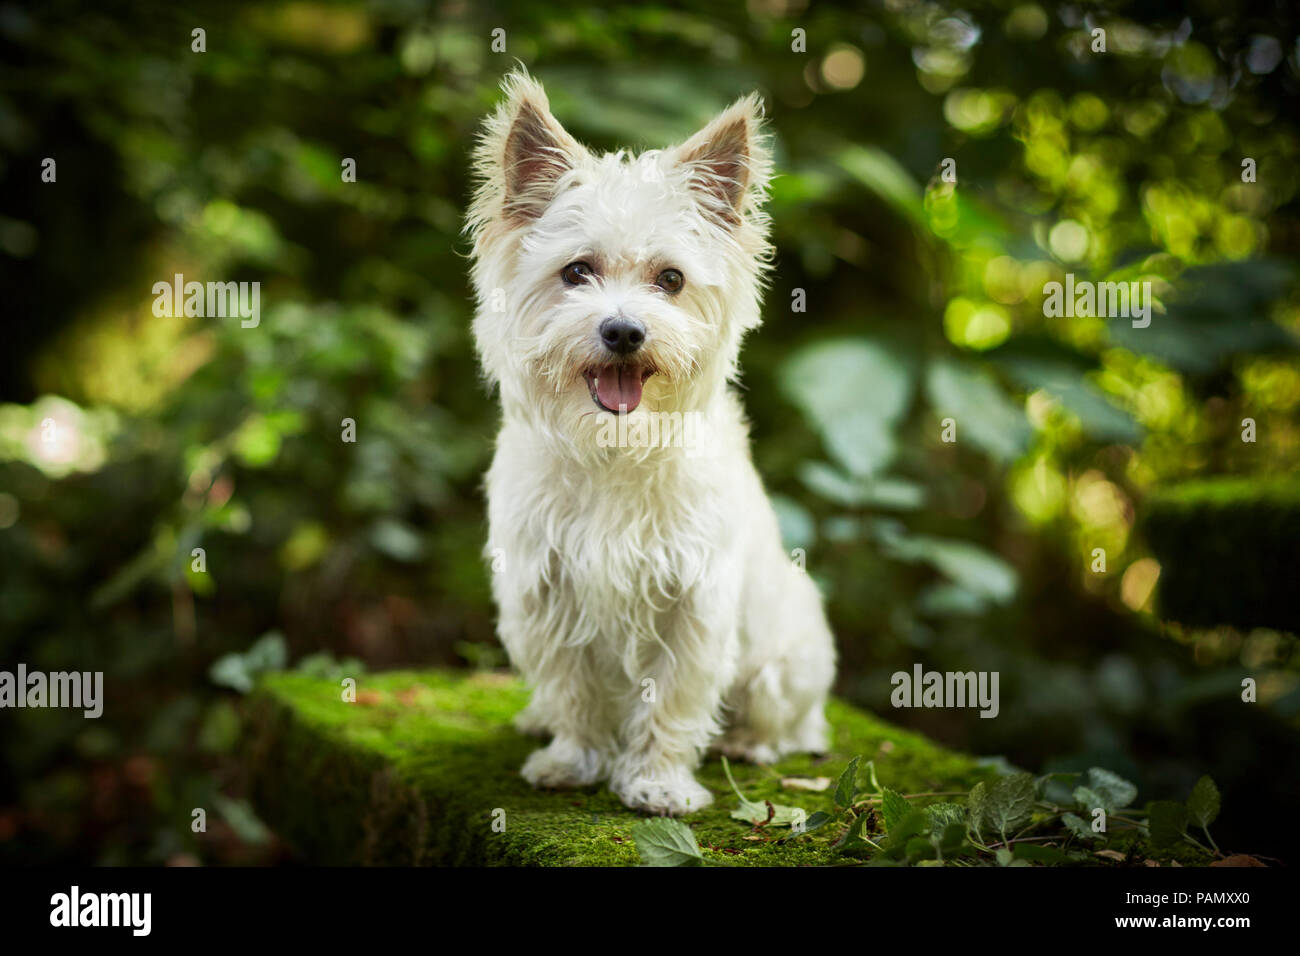 Mixed-breed dog. Adult dog sitting on a mossy rock. Germany - Stock Image